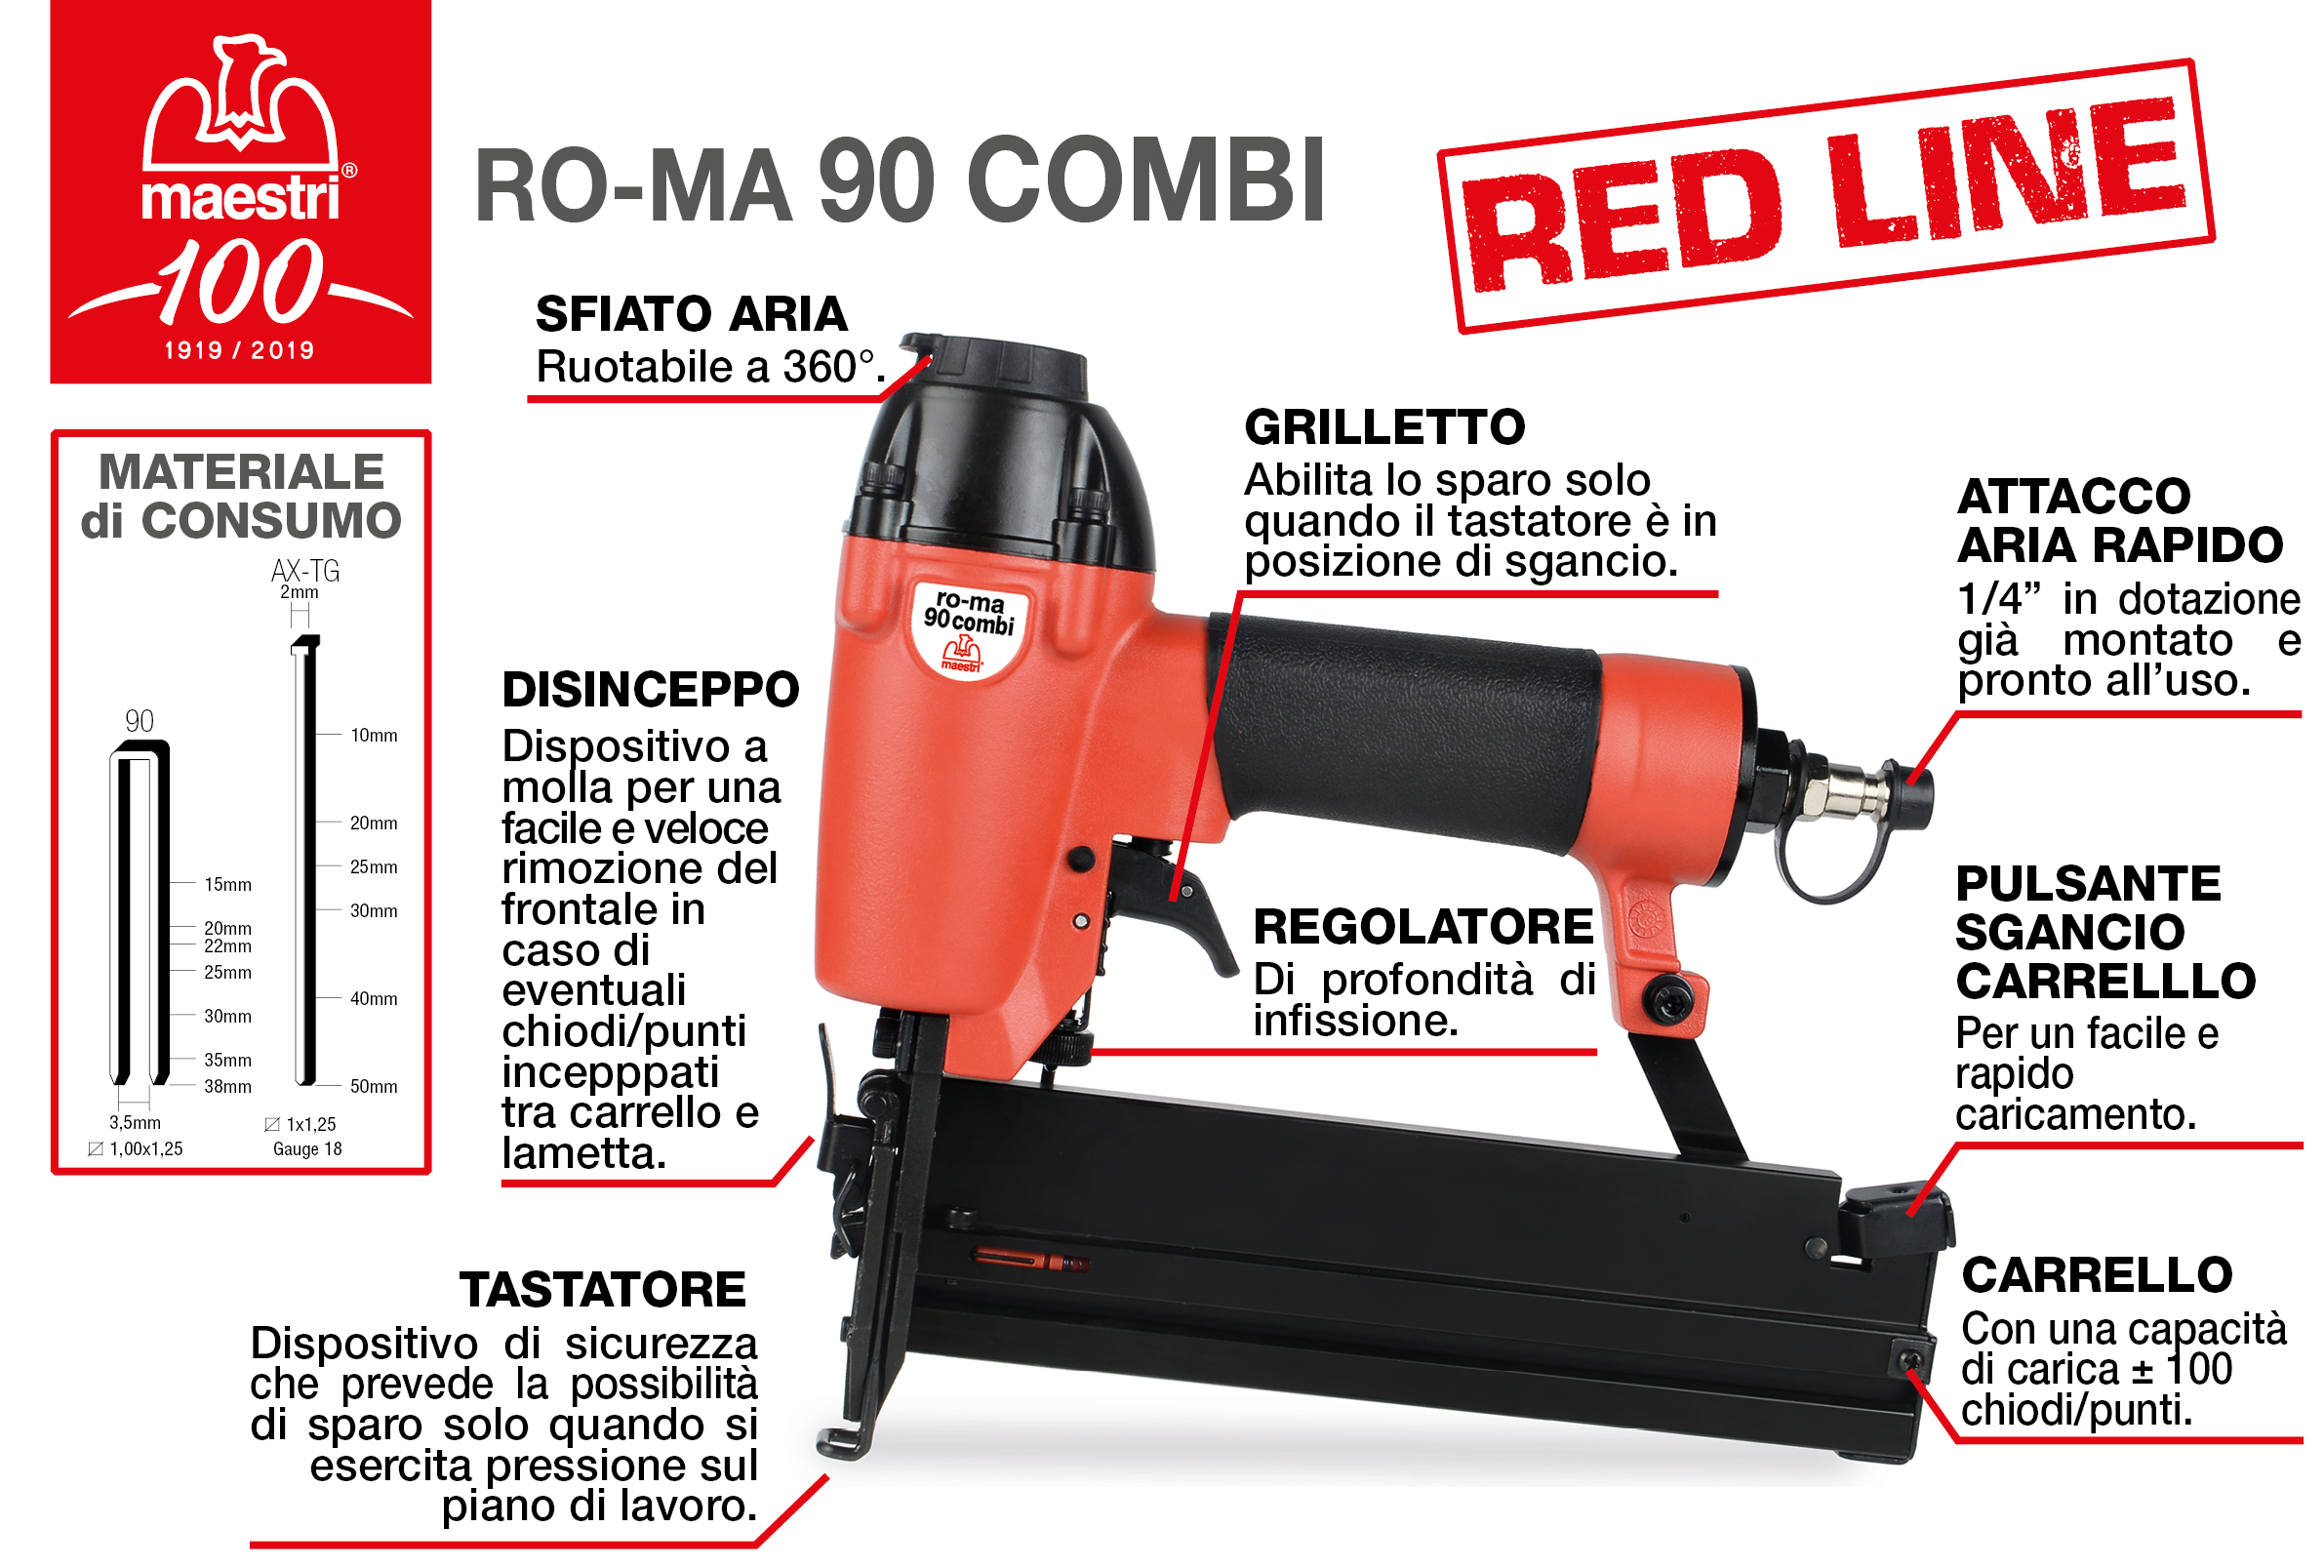 RO-MA 90 COMBI RED LINE